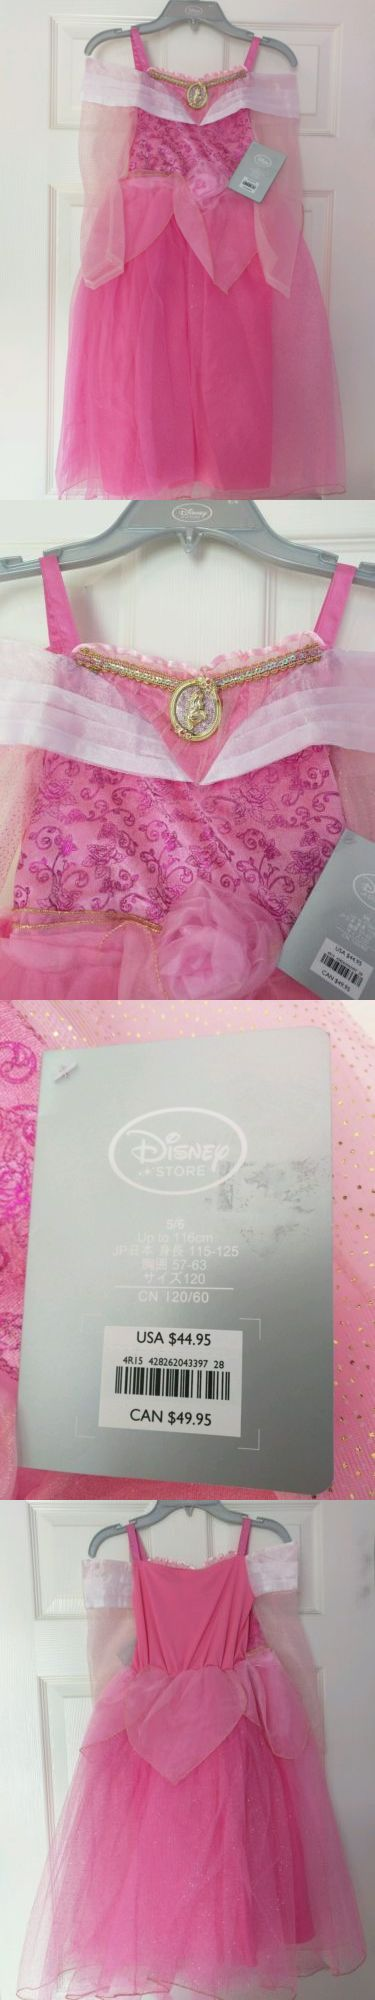 Halloween Costumes Kids: Nwt Disney Store Princess Aurora Costume Dress Size 5/6 Pink Retail $44.95 -> BUY IT NOW ONLY: $35 on eBay!